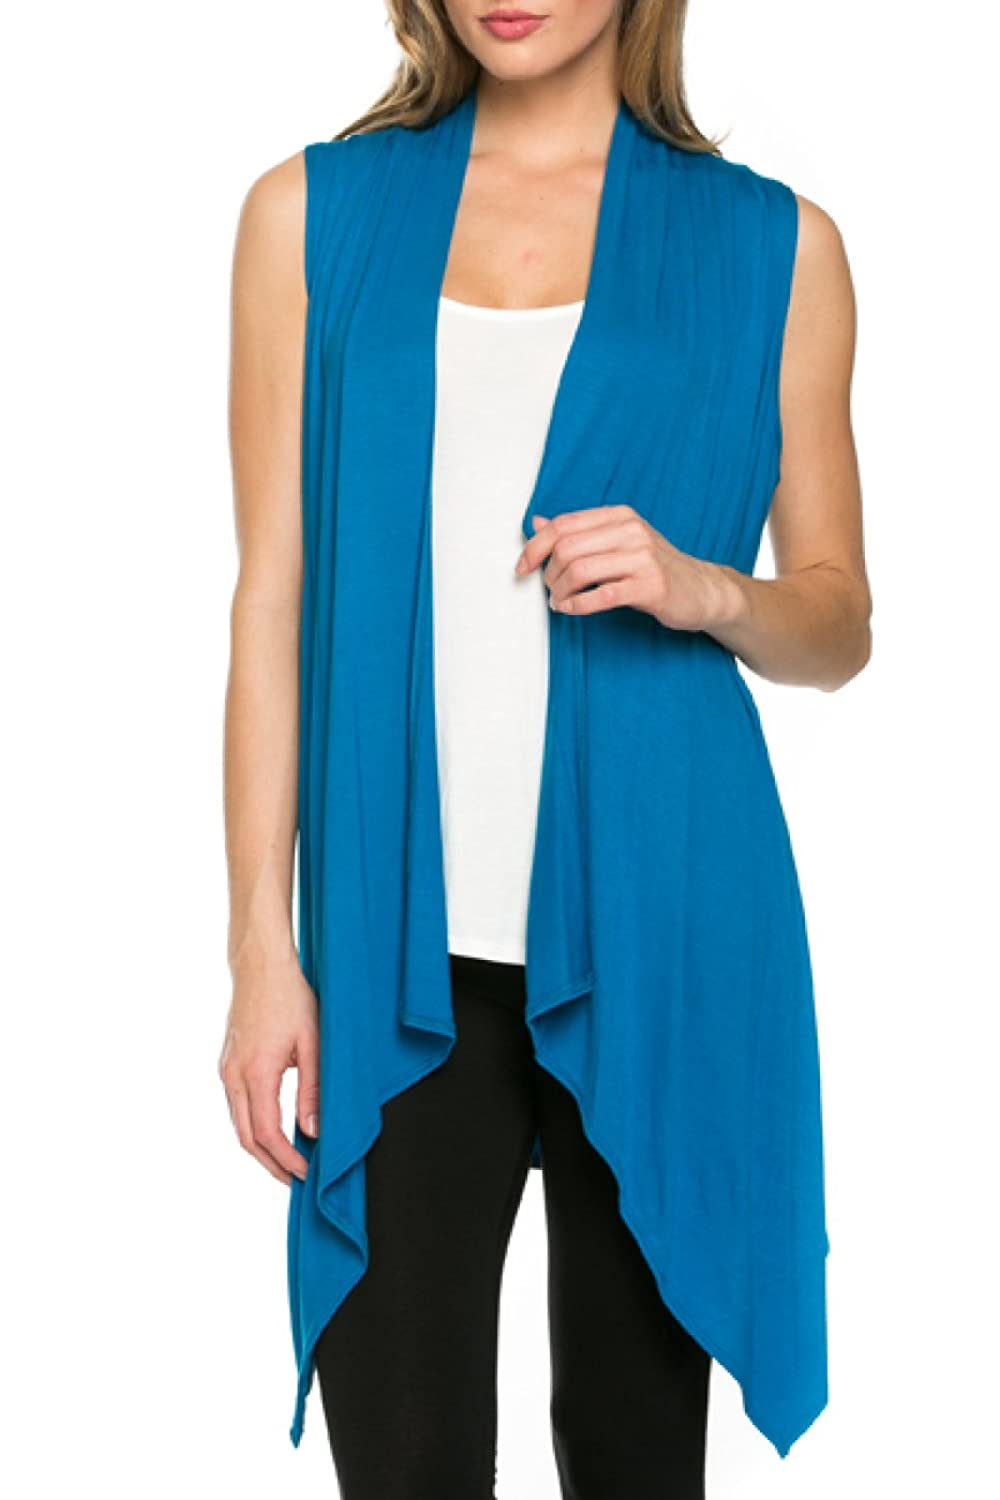 2LUV Womens Draped Open Front Jersey Knit Vest